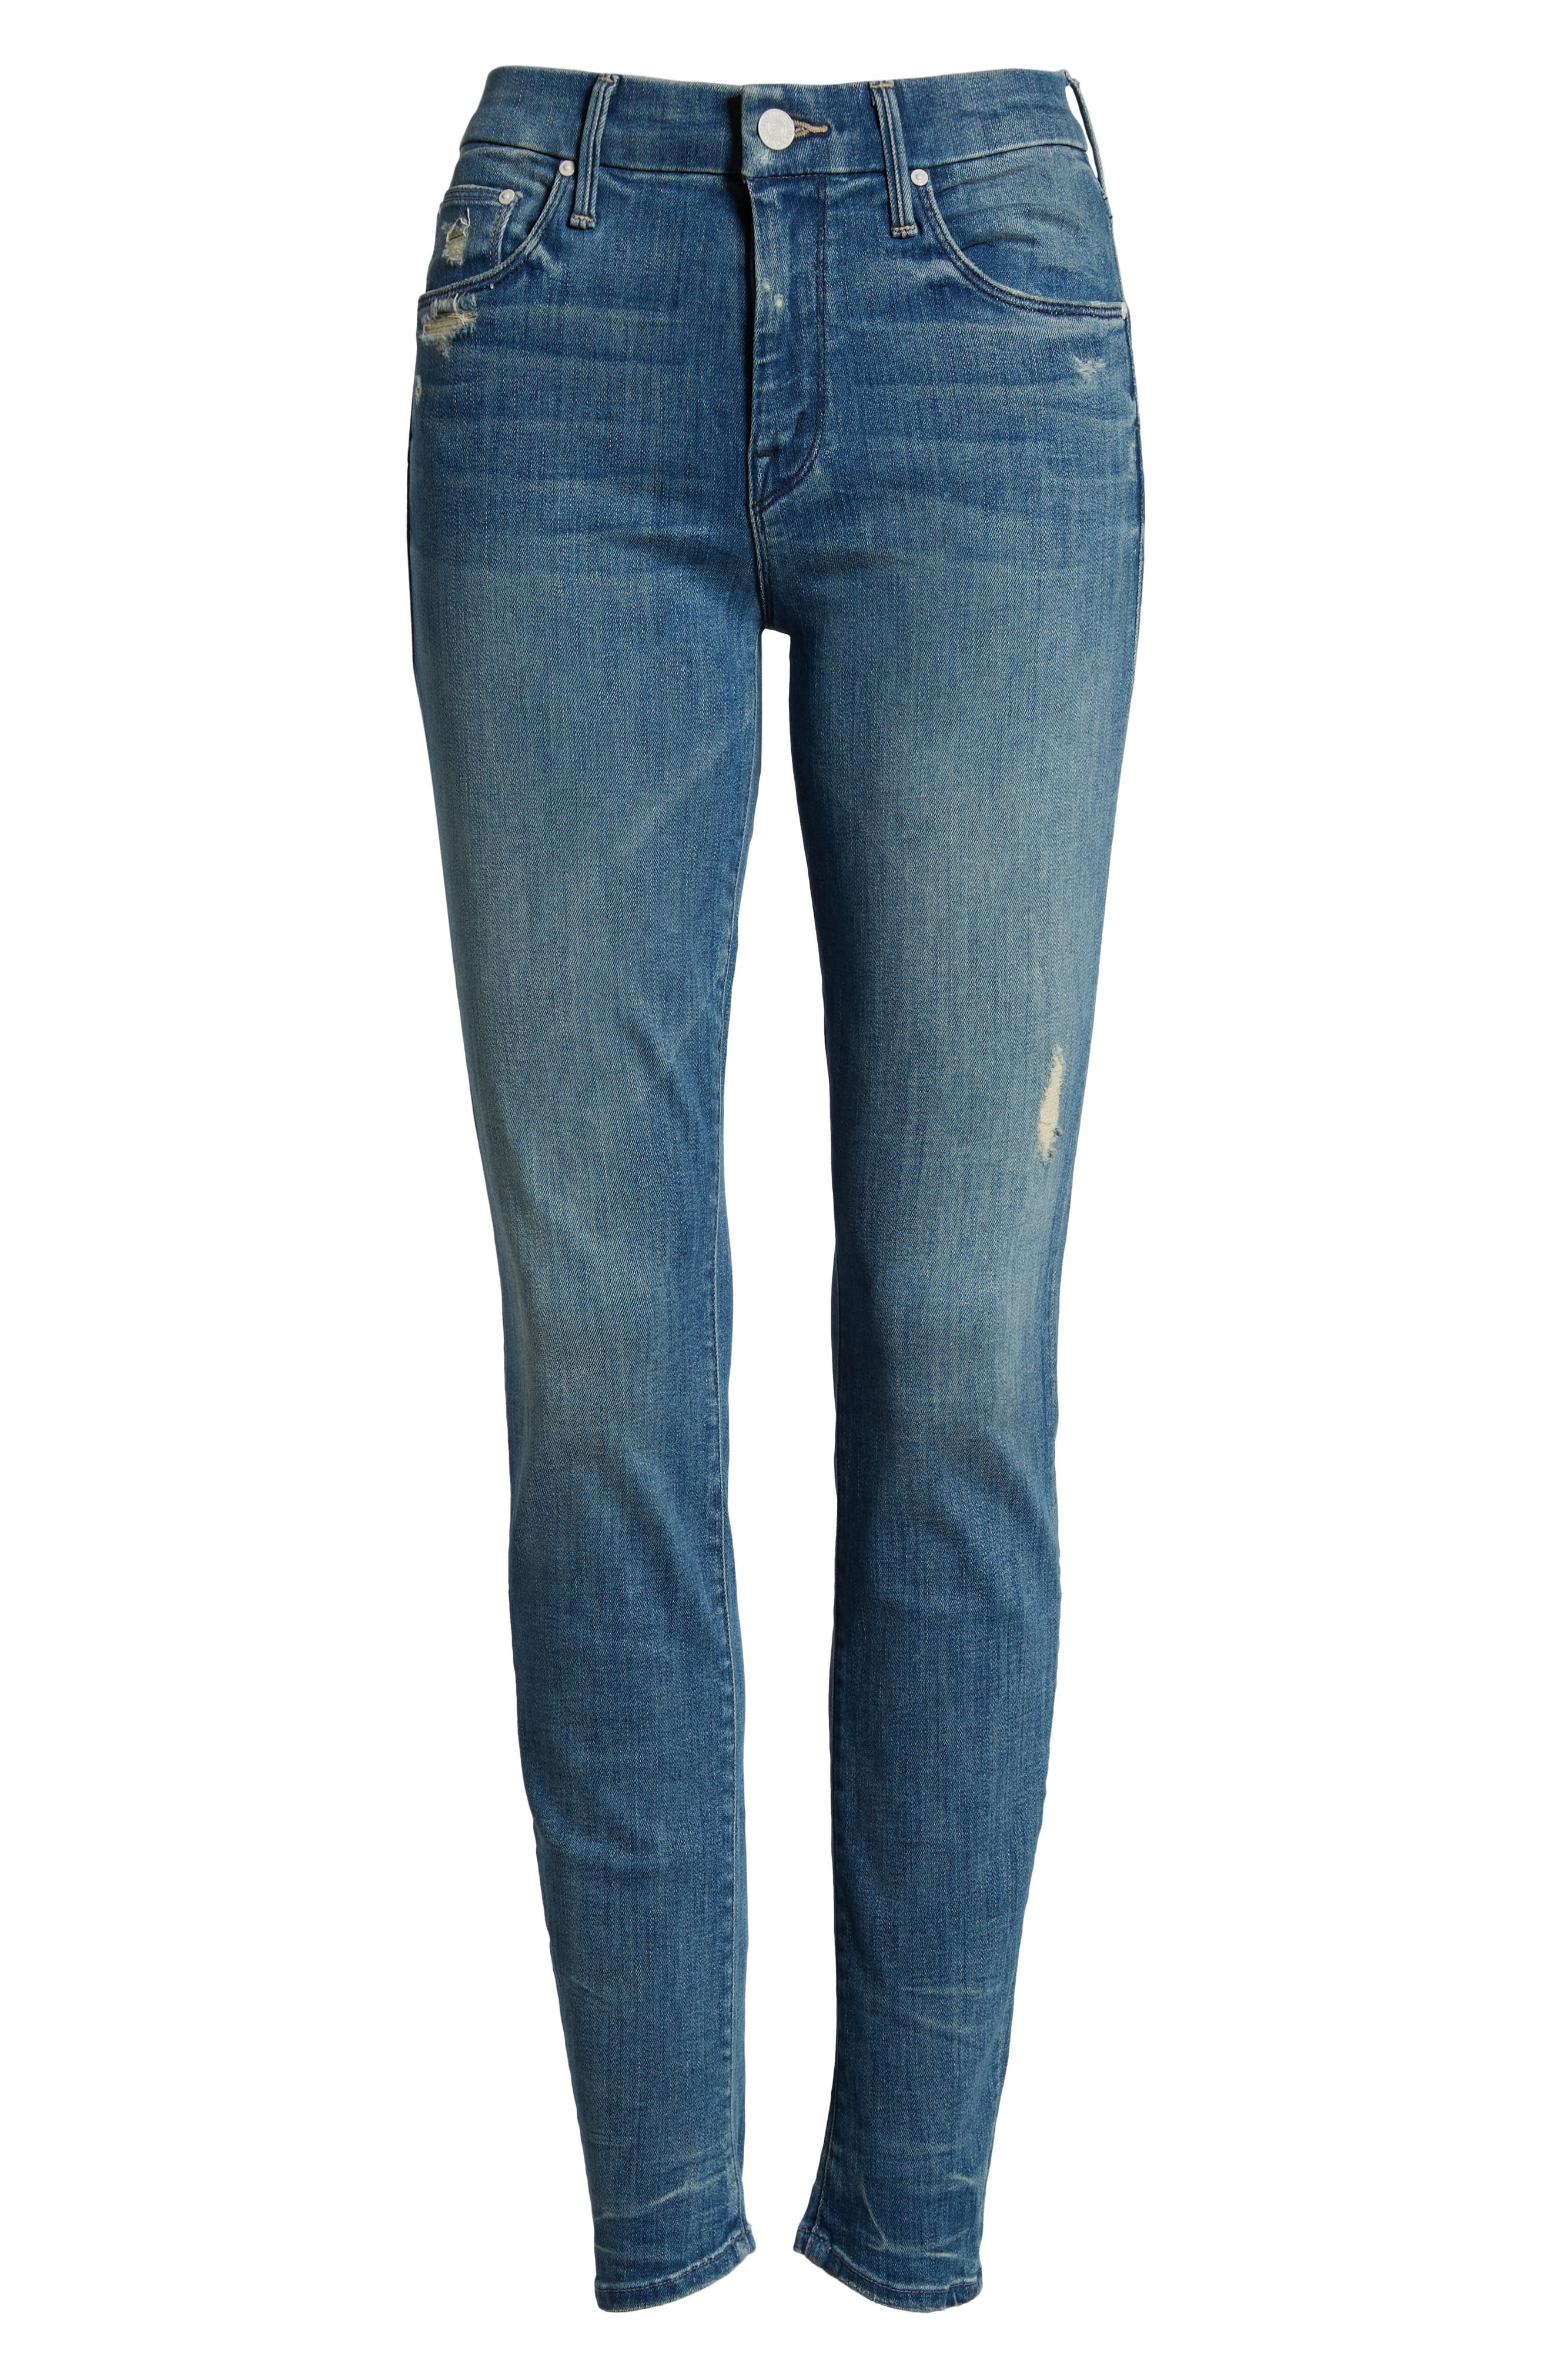 MOTHER, 'The Looker' Skinny Stretch Jeans, Alternate thumbnail 2, color, GRAFFITI GIRL